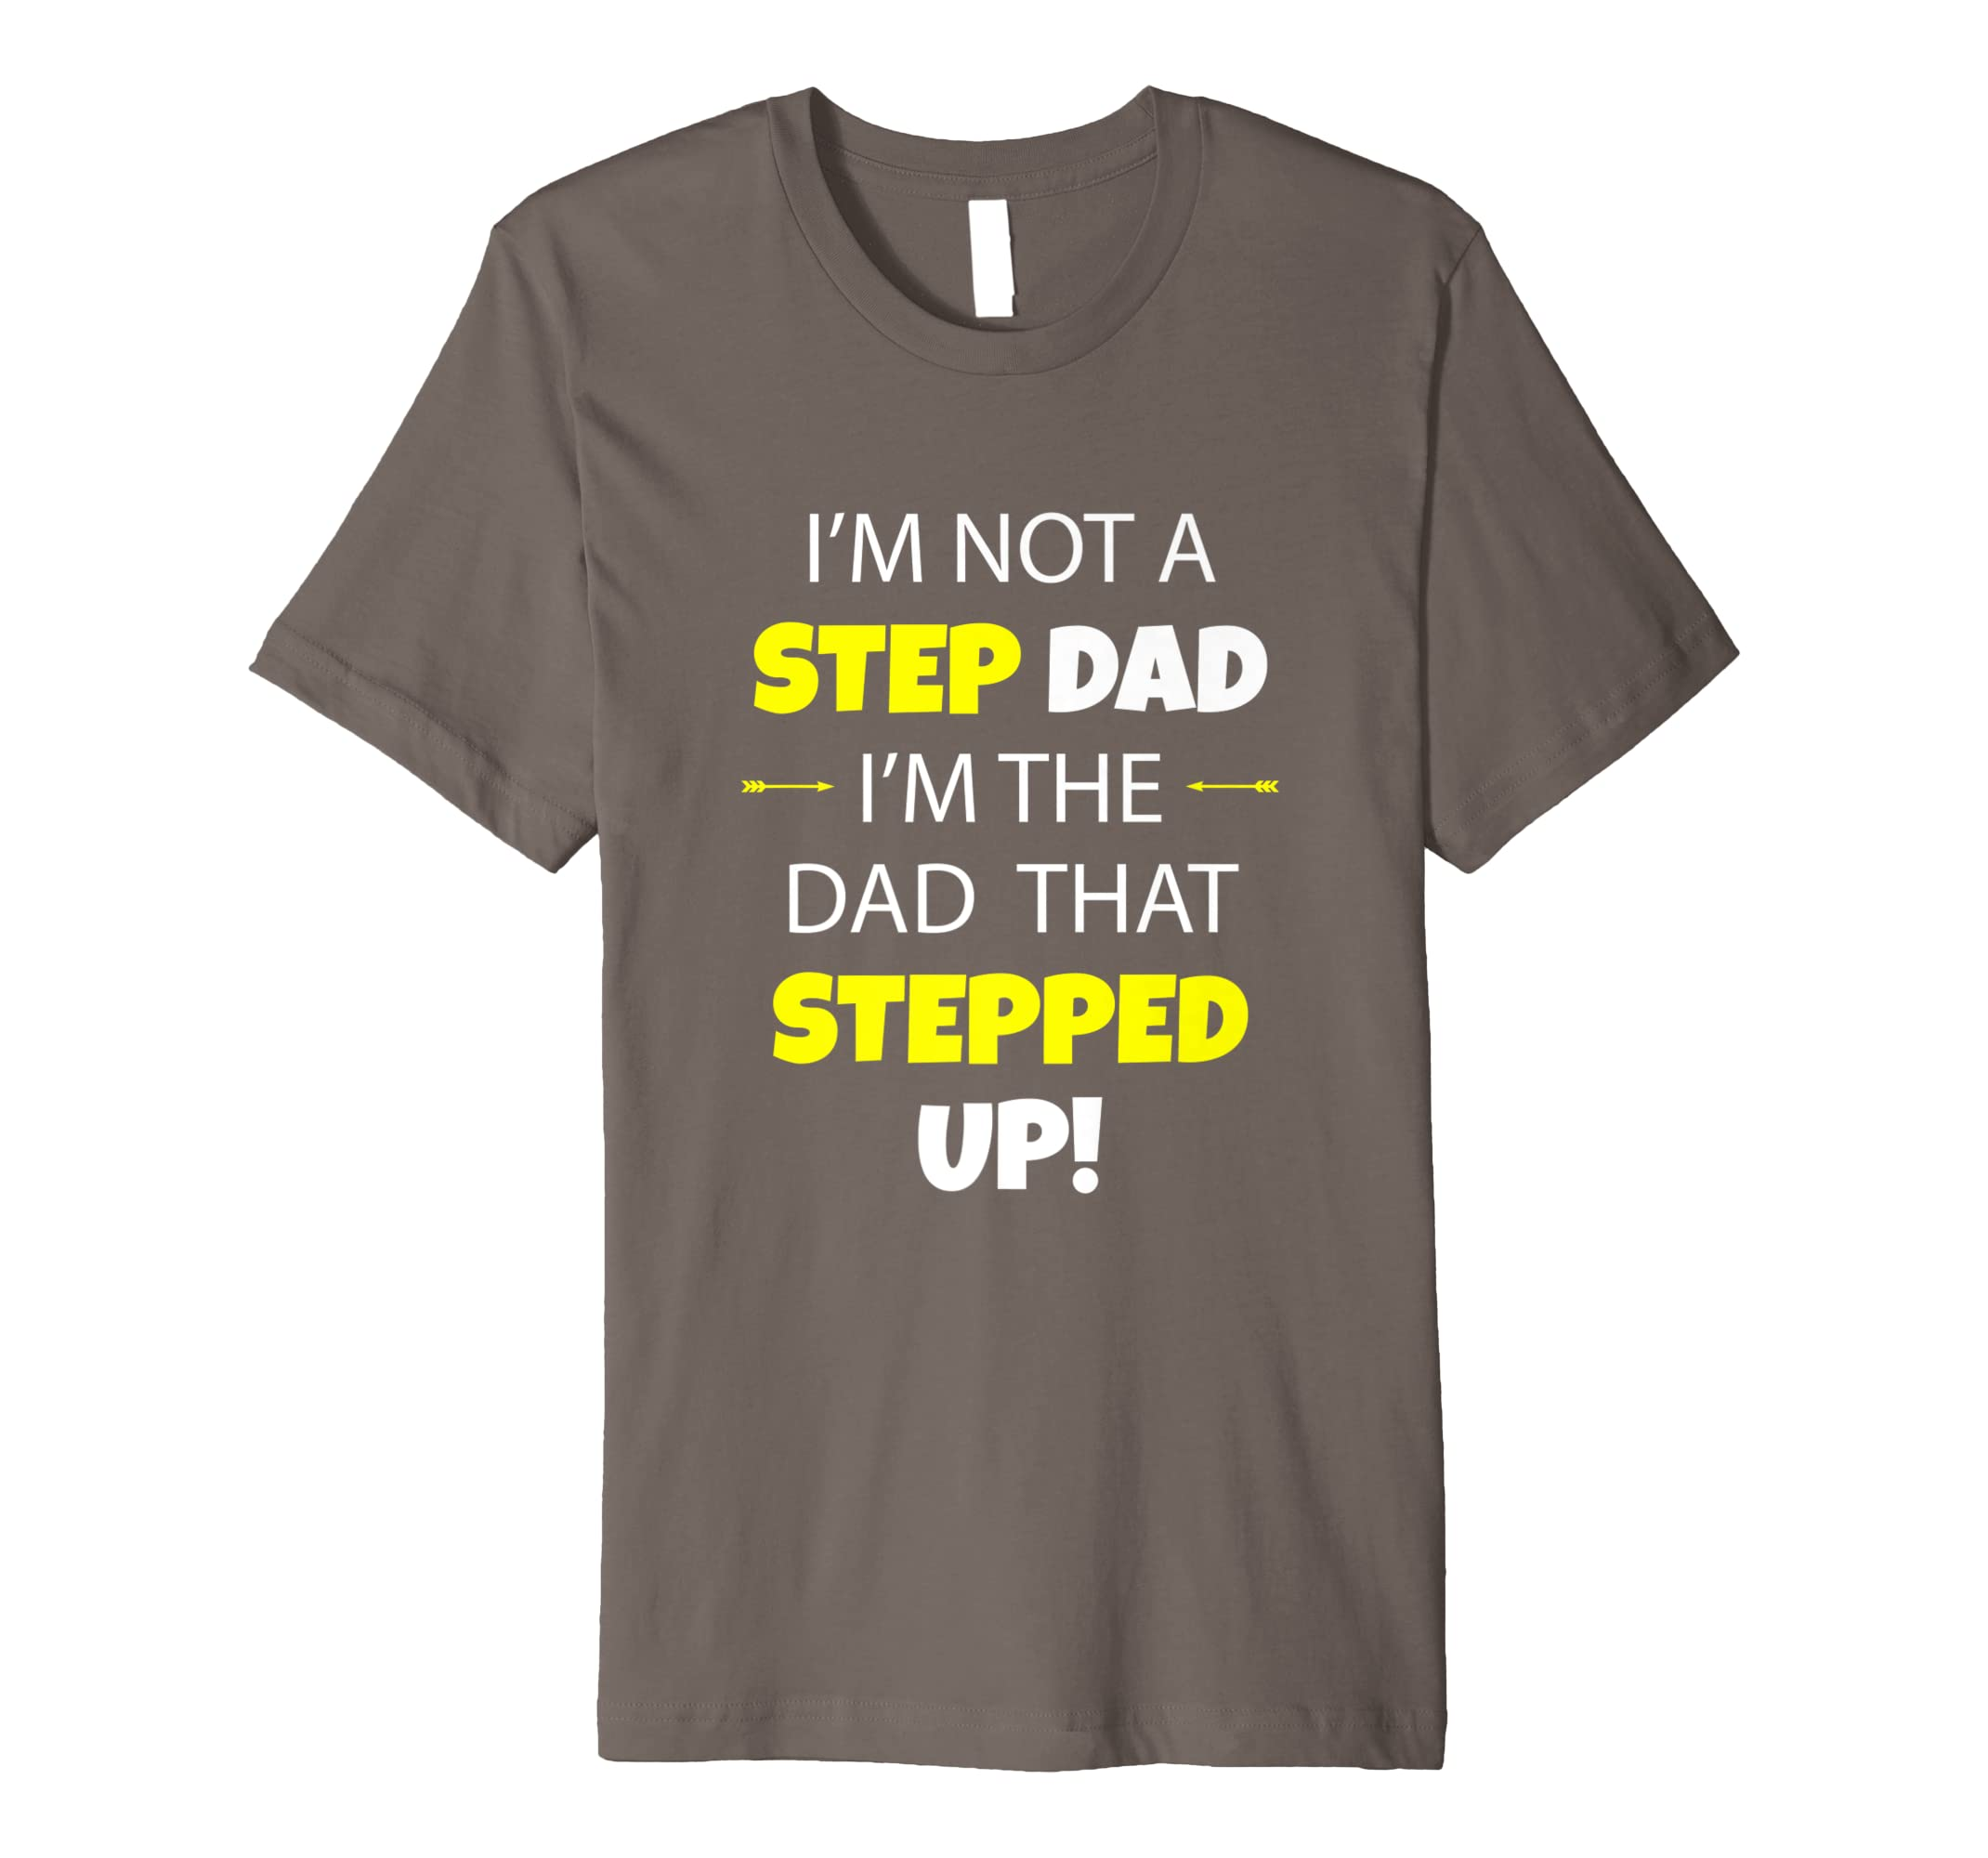 fce5b50b2 Amazon.com: I'm Not A Step Dad I'm The Dad That Stepped Up Shirt 4BWPR2:  Clothing